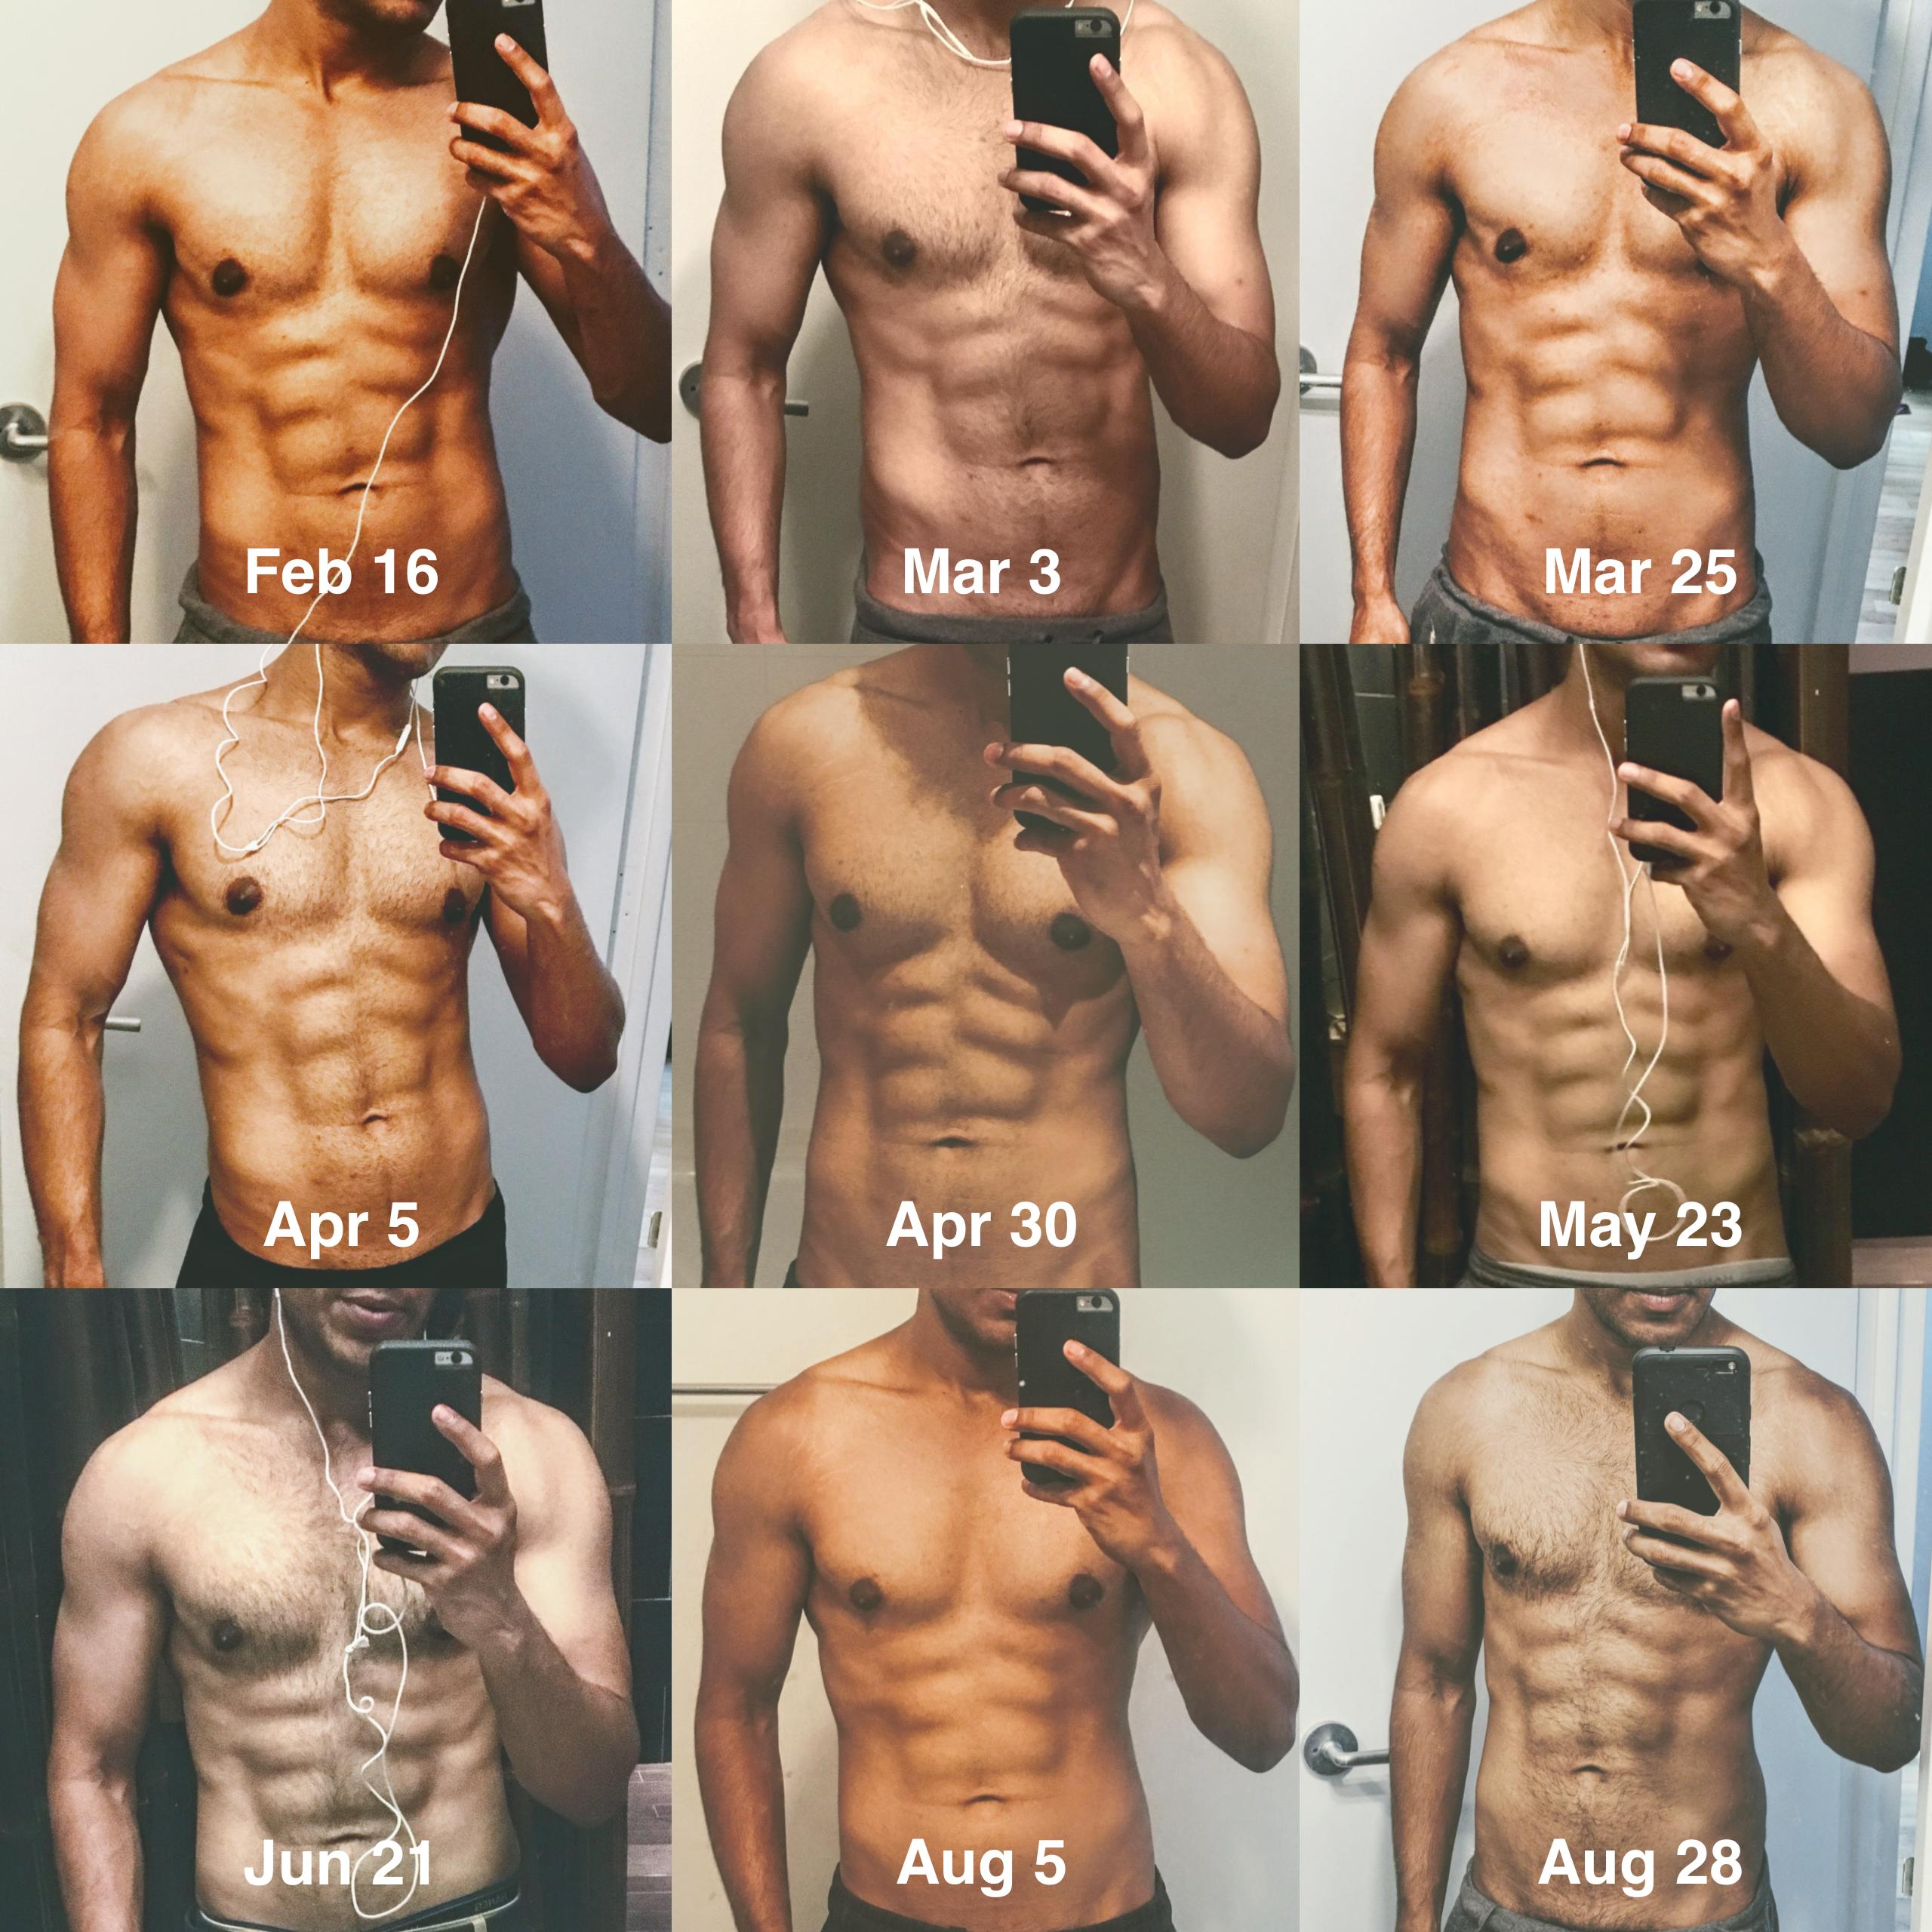 My Transformation II: Maintaining a 6 pack for 8 months